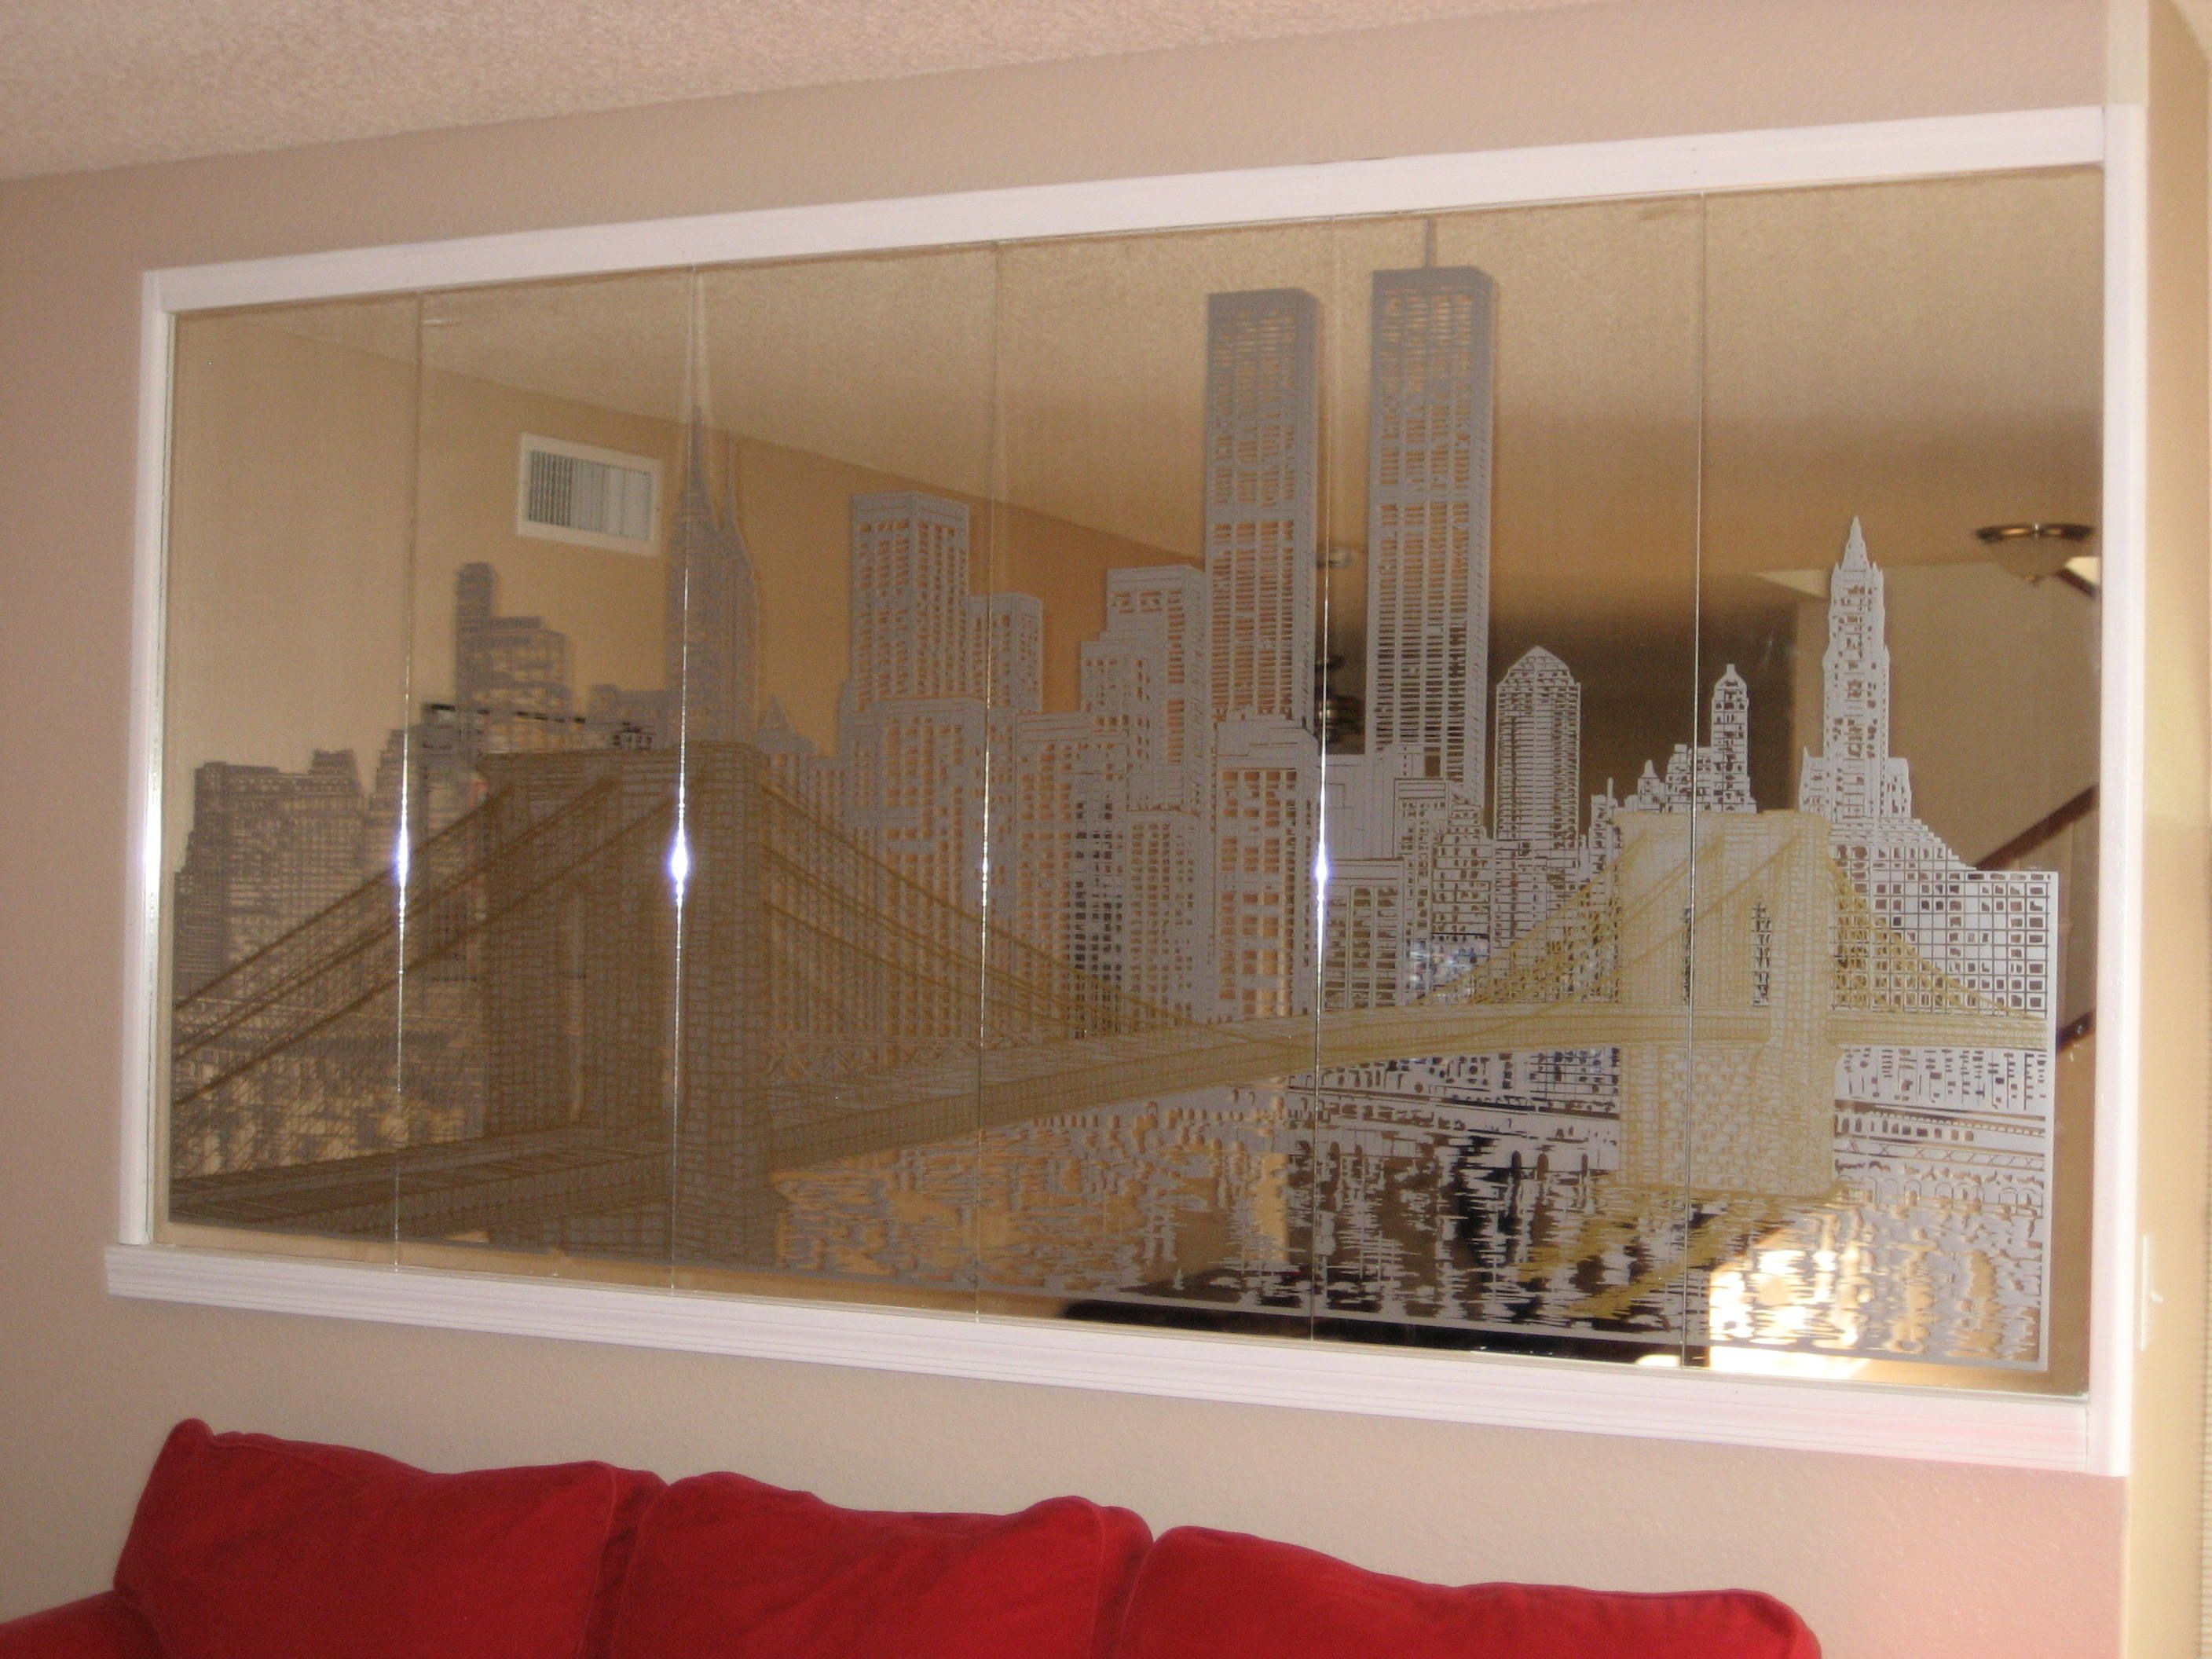 Mirror New York Large Etched Of Skyline Found In Swantutorial Blue39s Chinese 3d Modular Origami Swan Diagram Home That Was Built